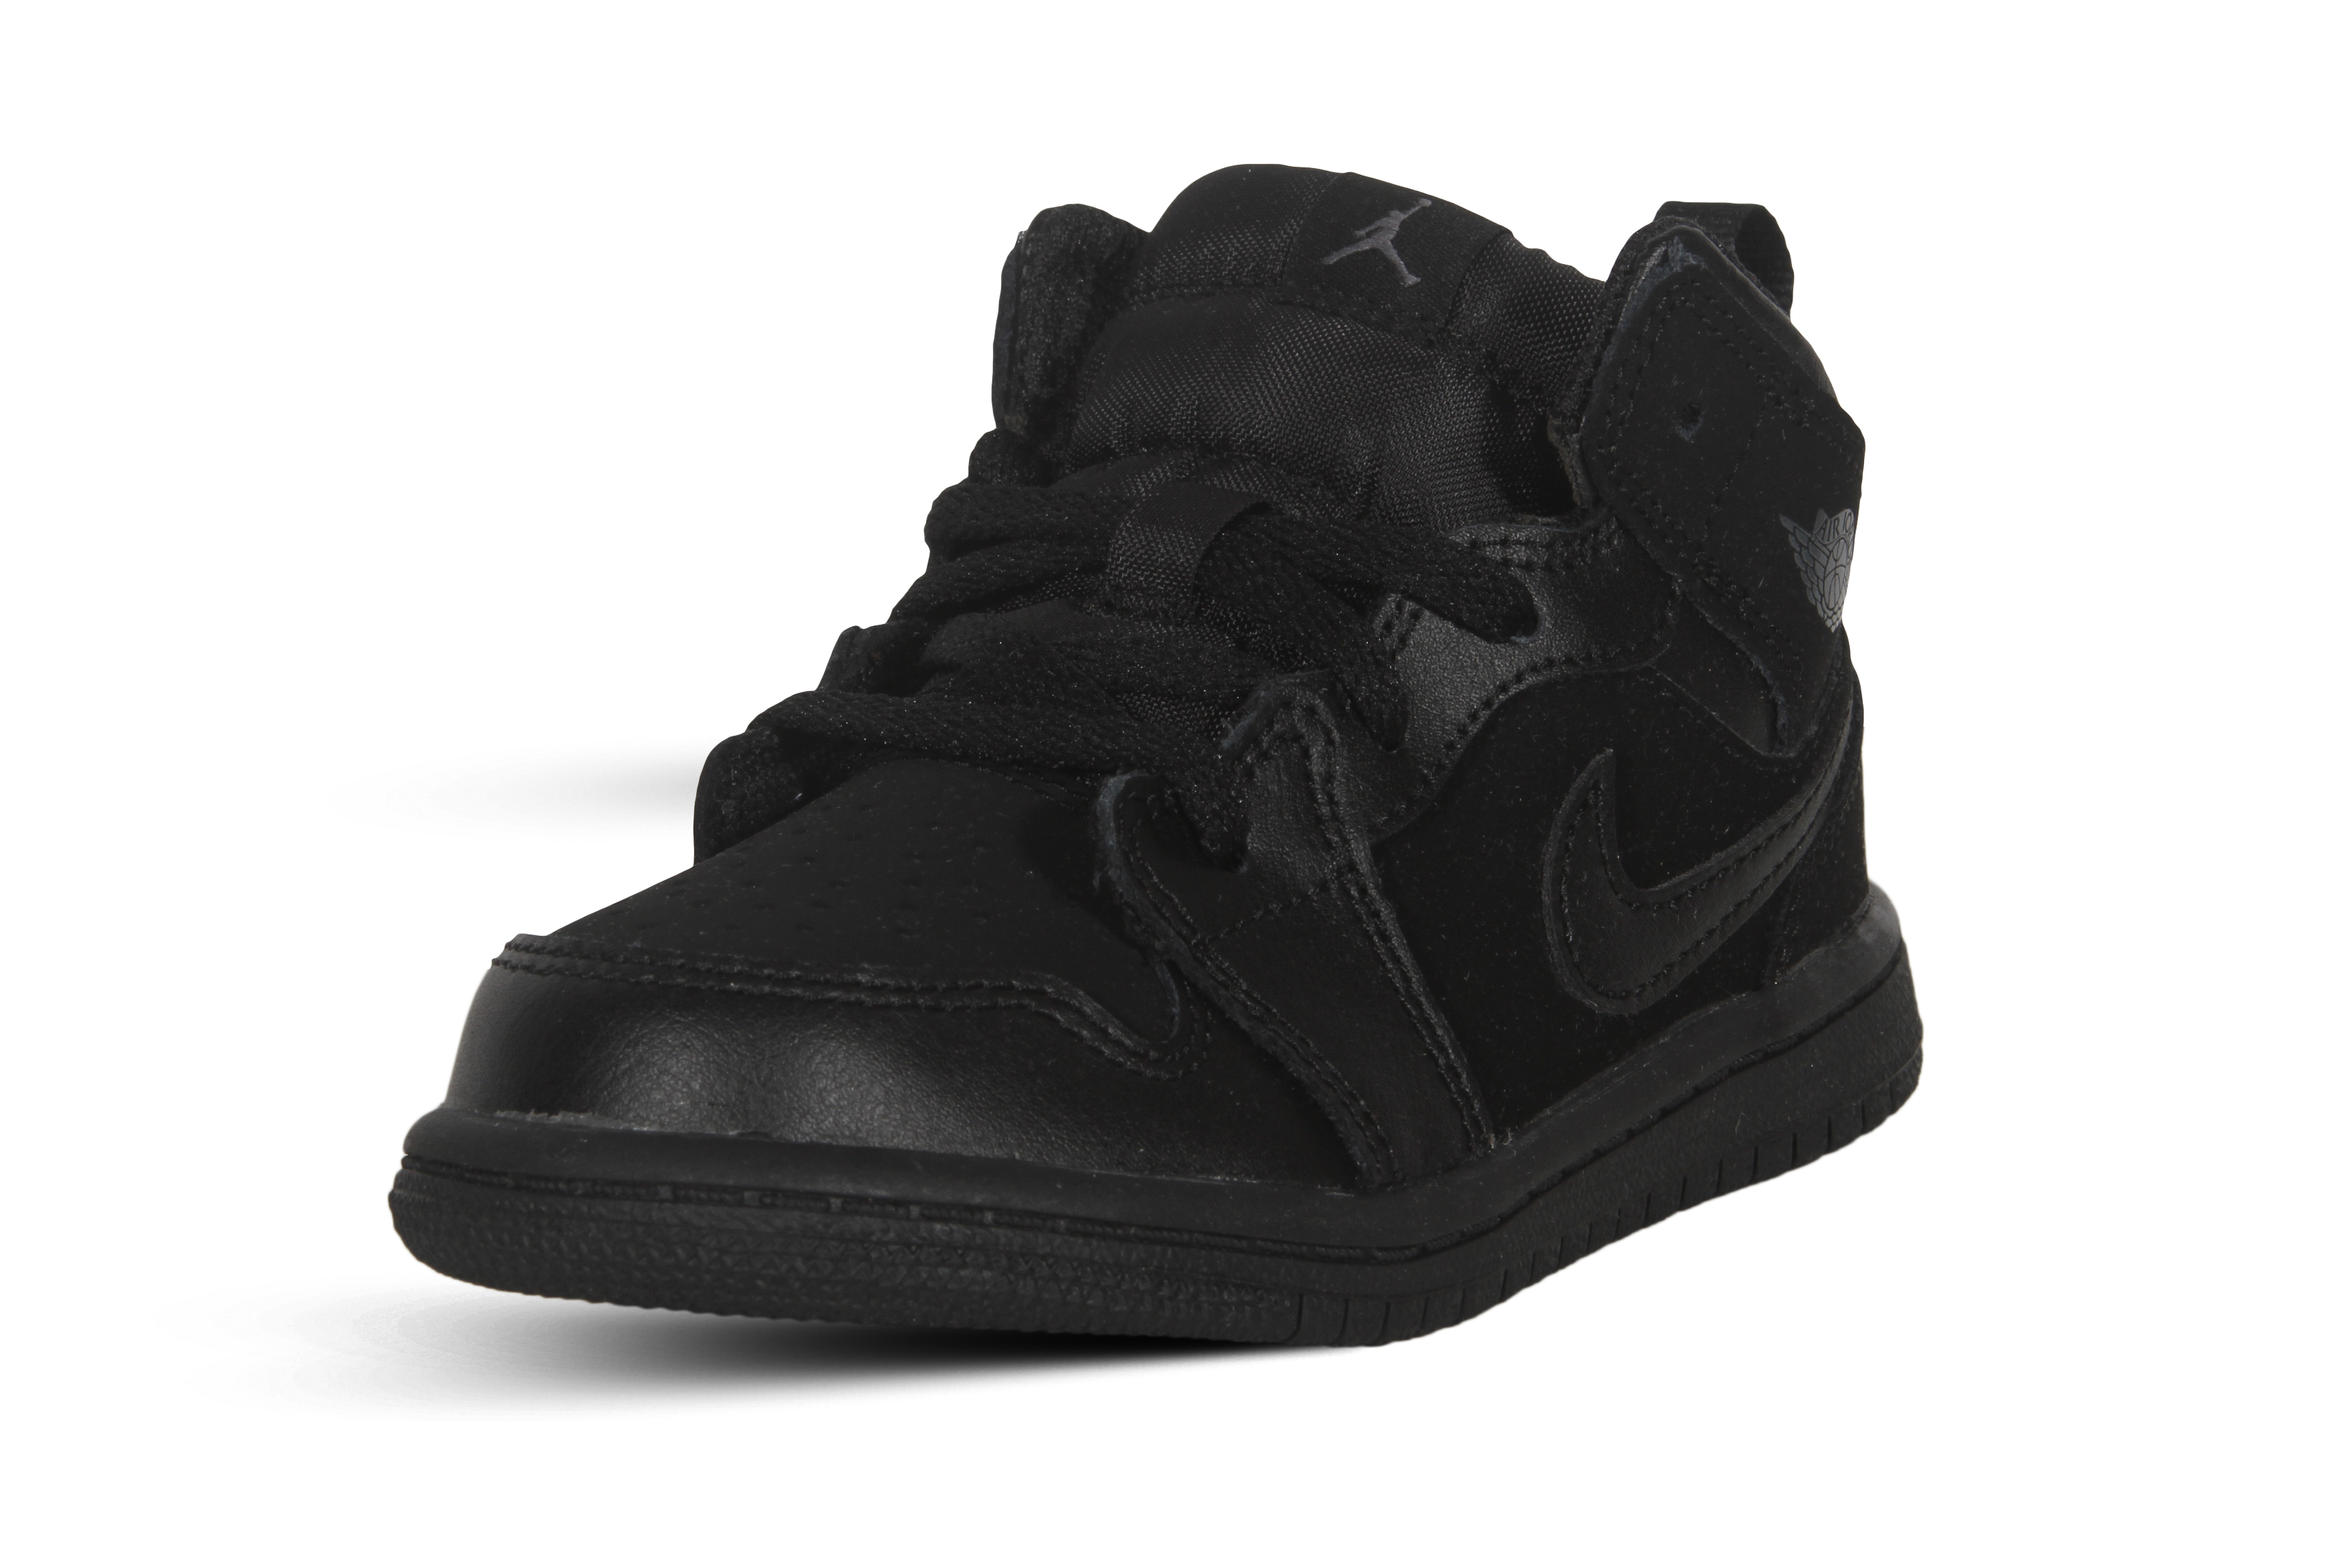 huge discount cde88 ad44a Air Jordan 1 Mid (TD) Boy s Toddlers Basketball Shoes 640735-050